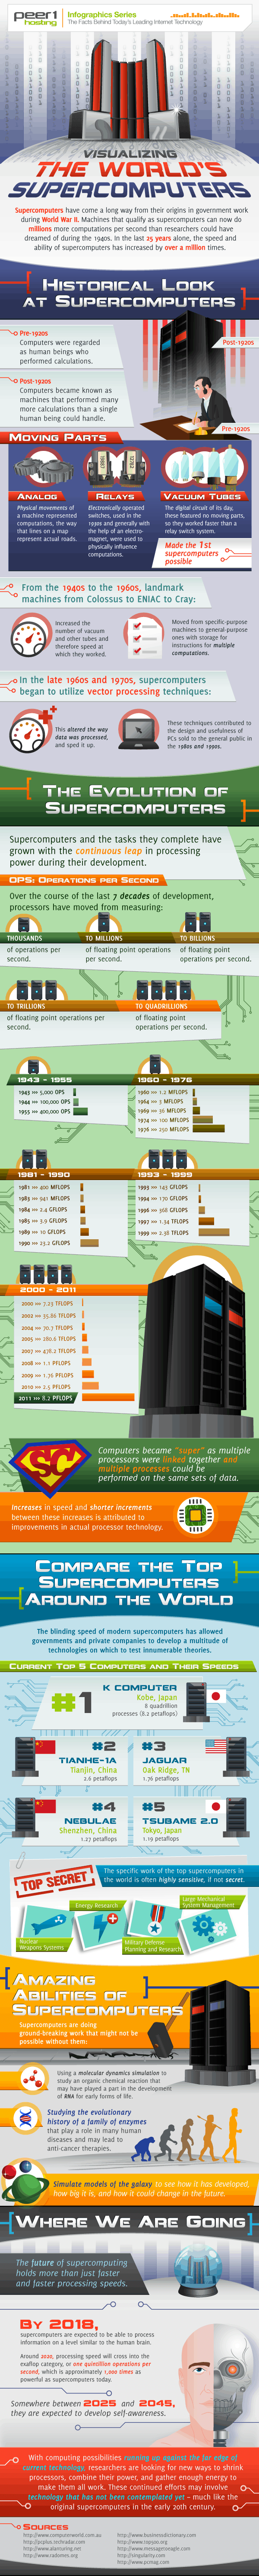 Supercomputers History Infographic